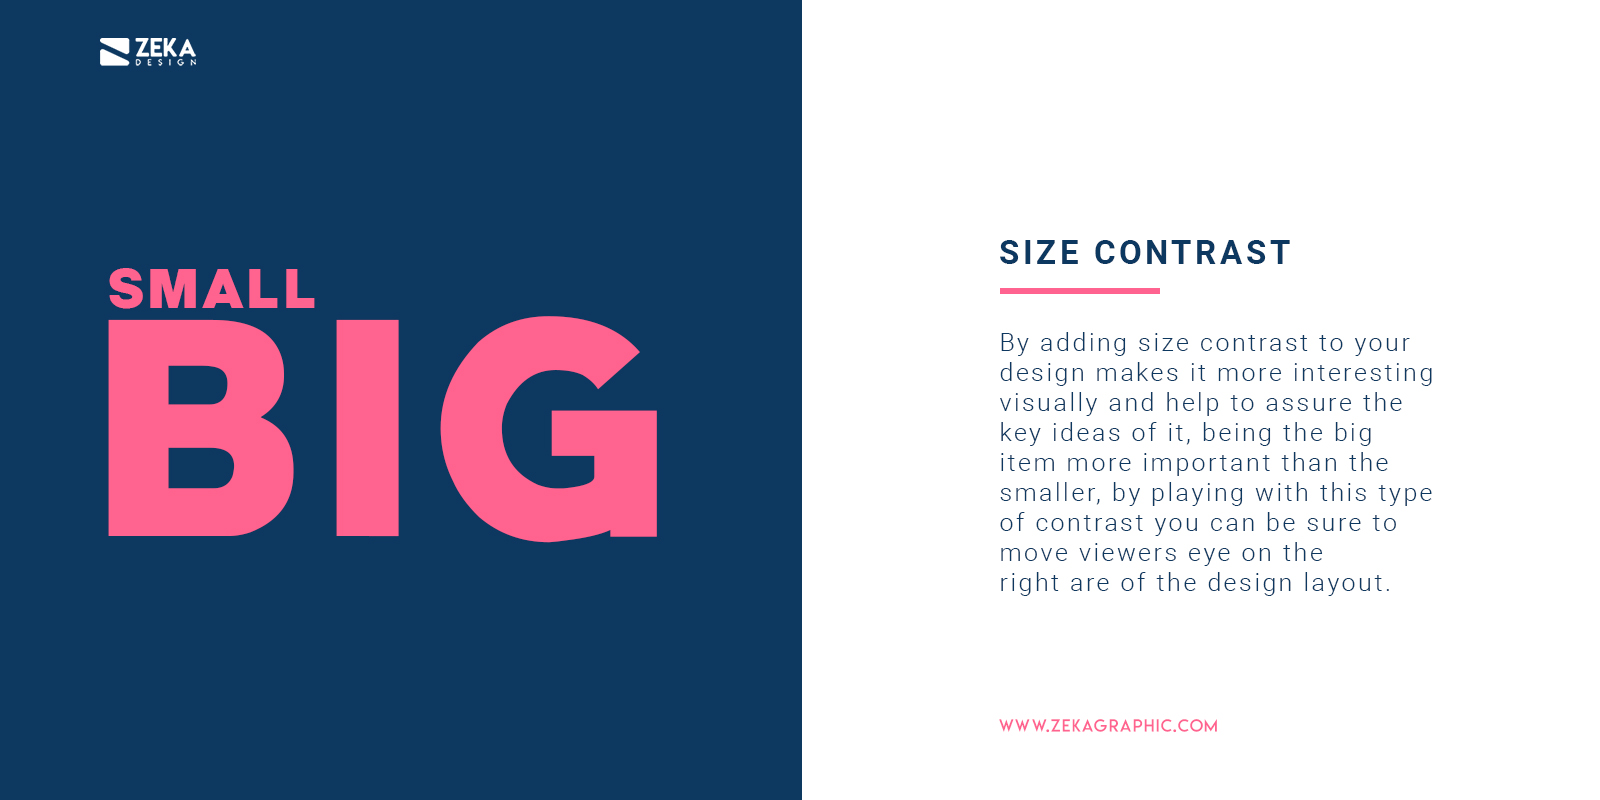 How To Use Size Contrast in Graphic Design